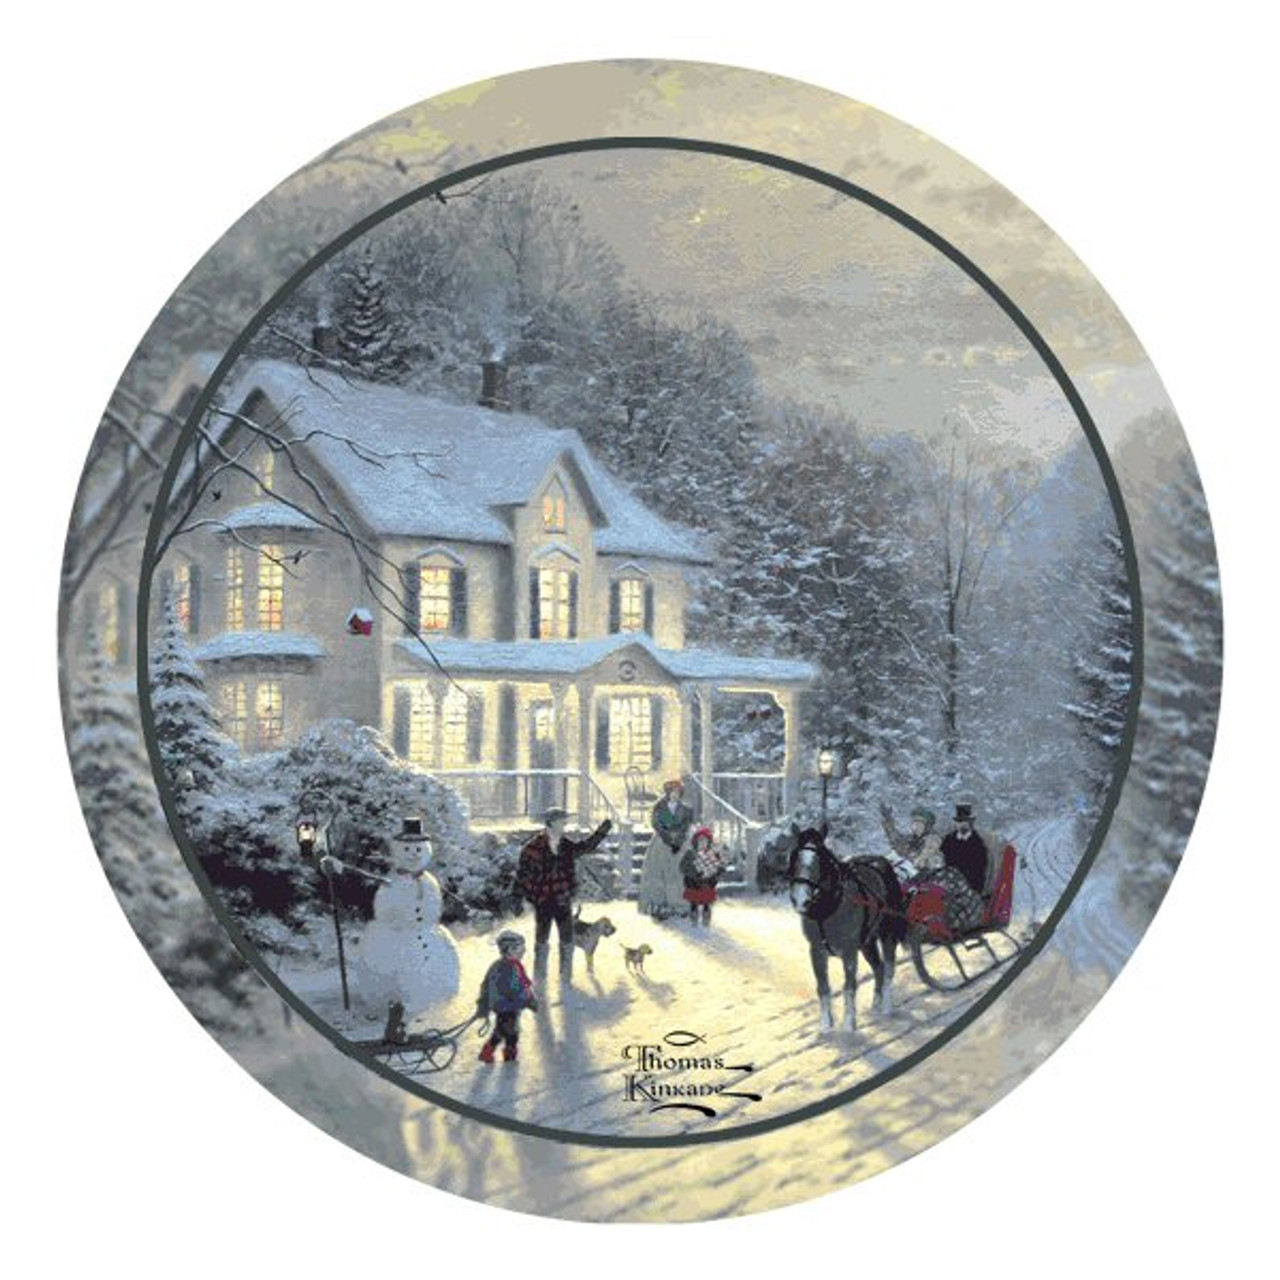 Home For The Holidays Beverage Coasters By Thomas Kinkade Set Of 8 Drink Coasters Thirstystone